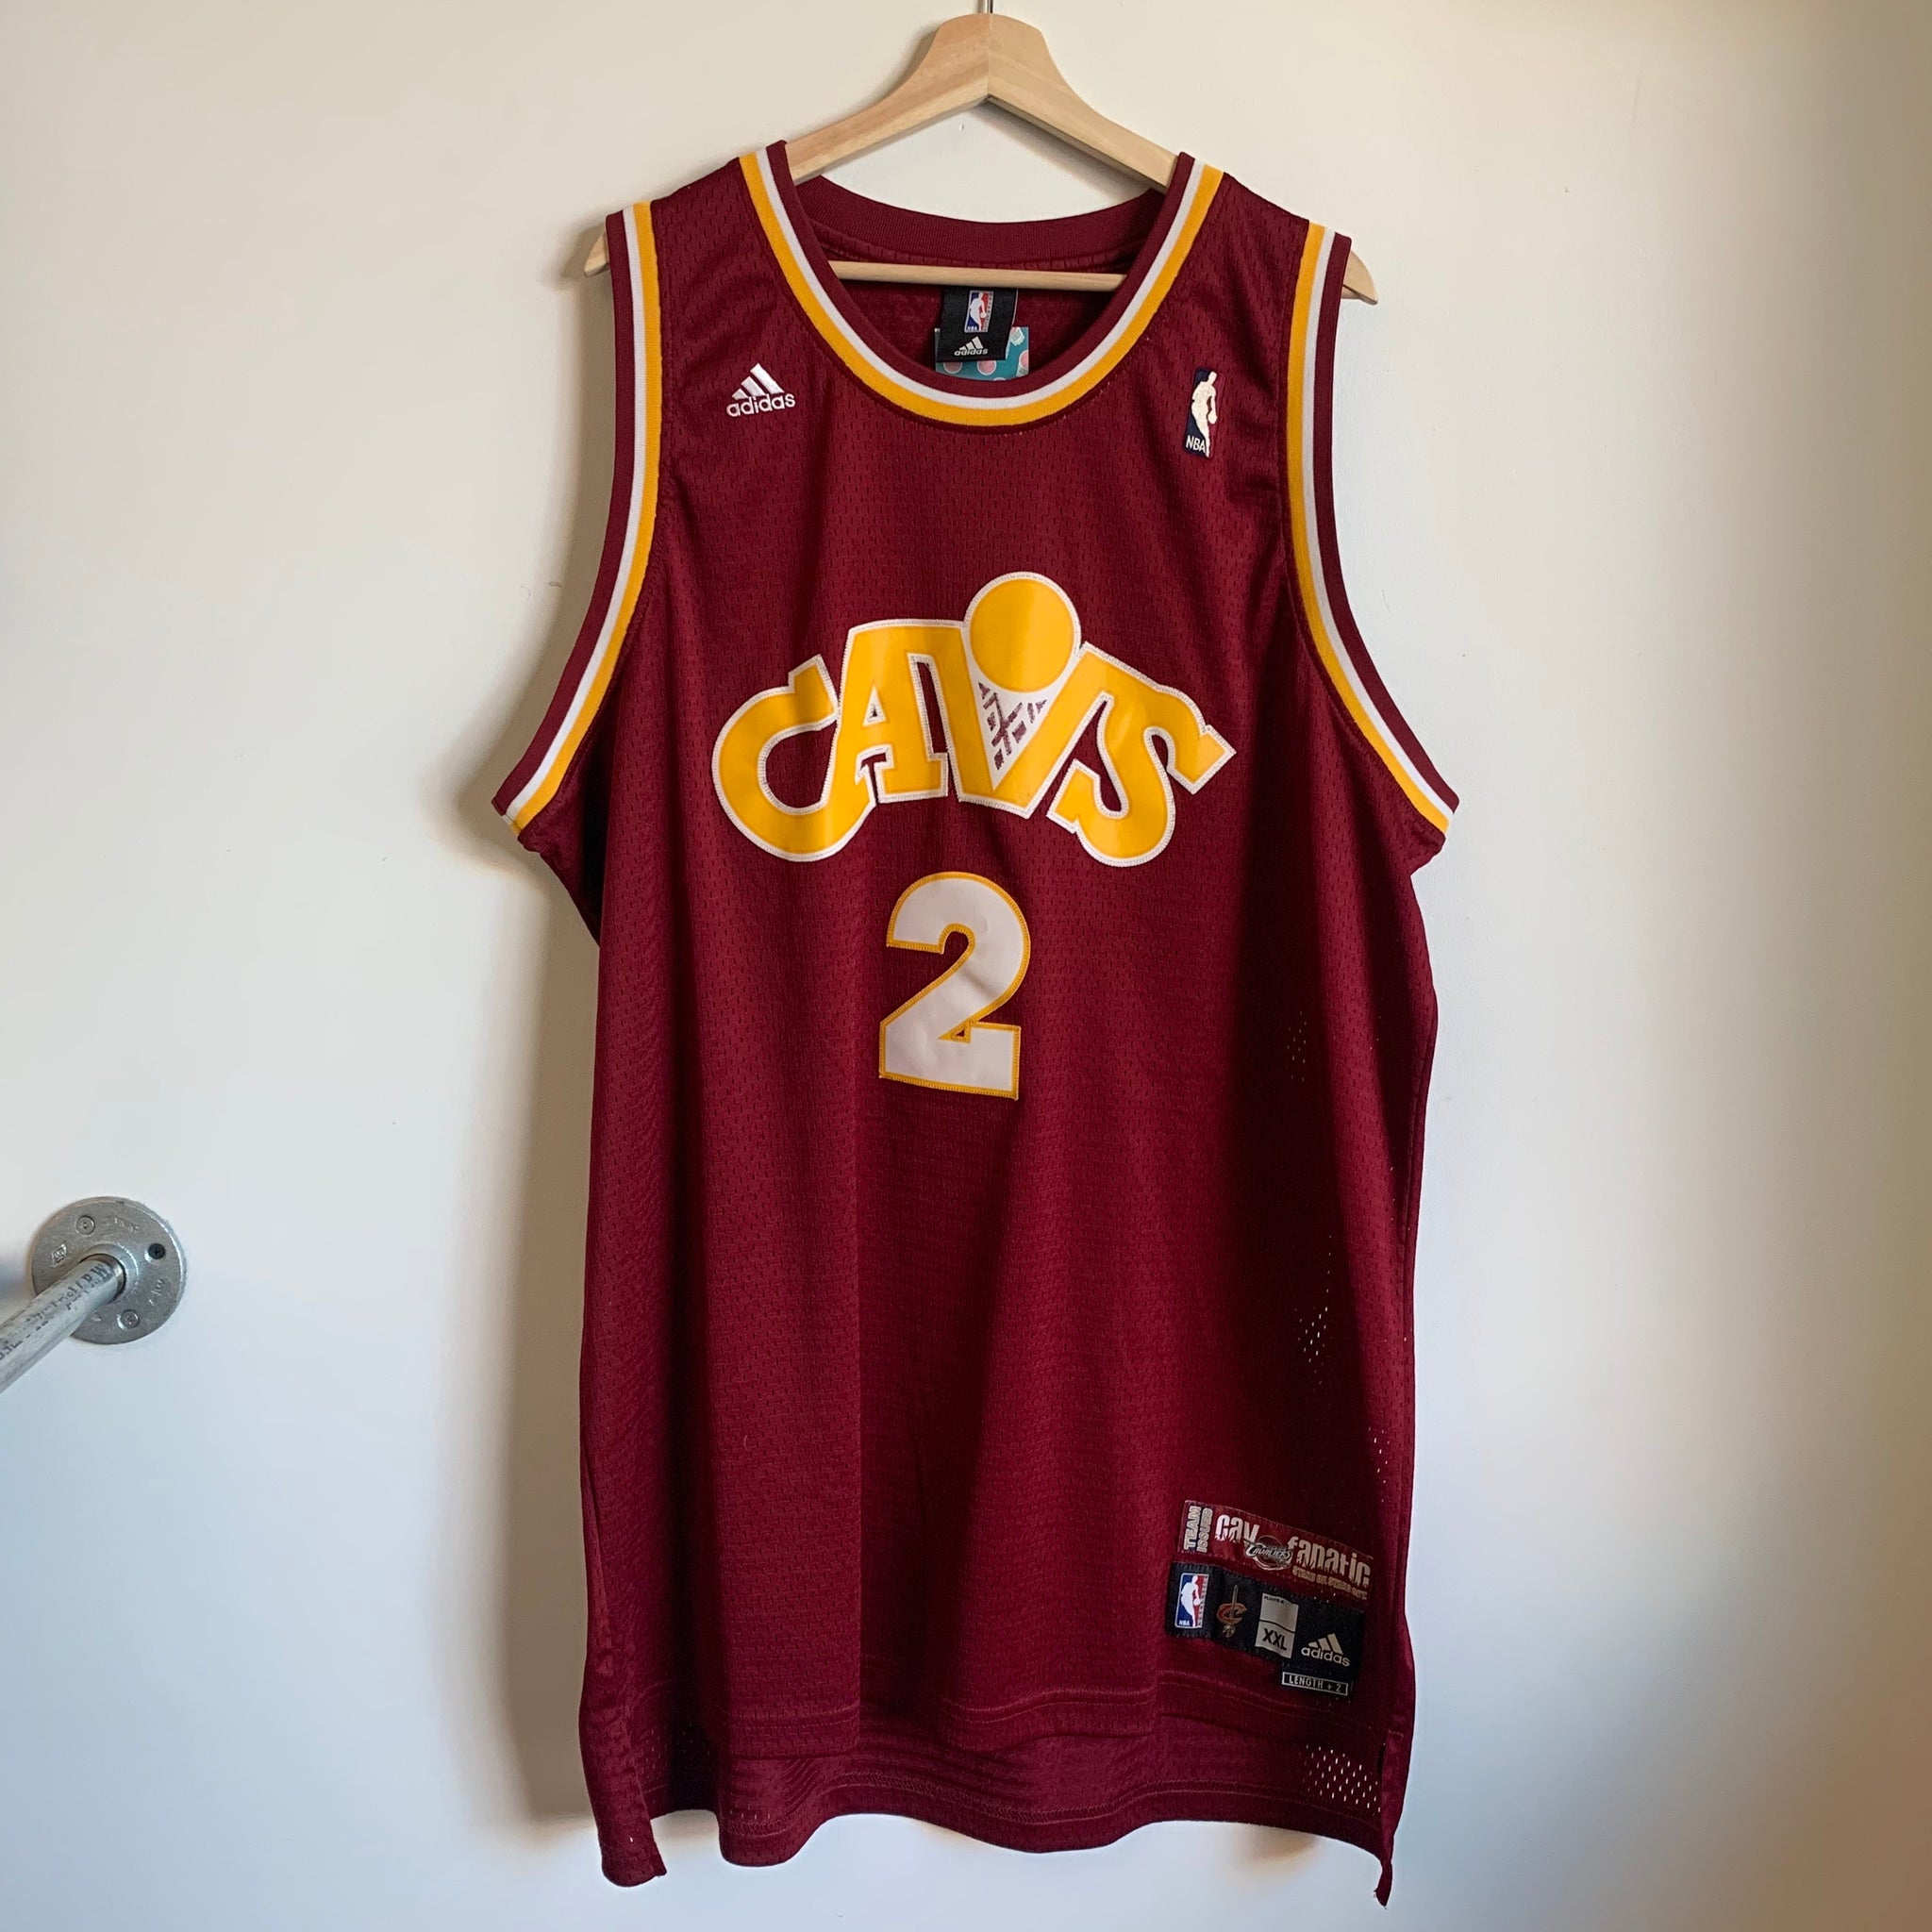 Adidas Cleveland Cavaliers Mo Williams Swingman Basketball Jersey